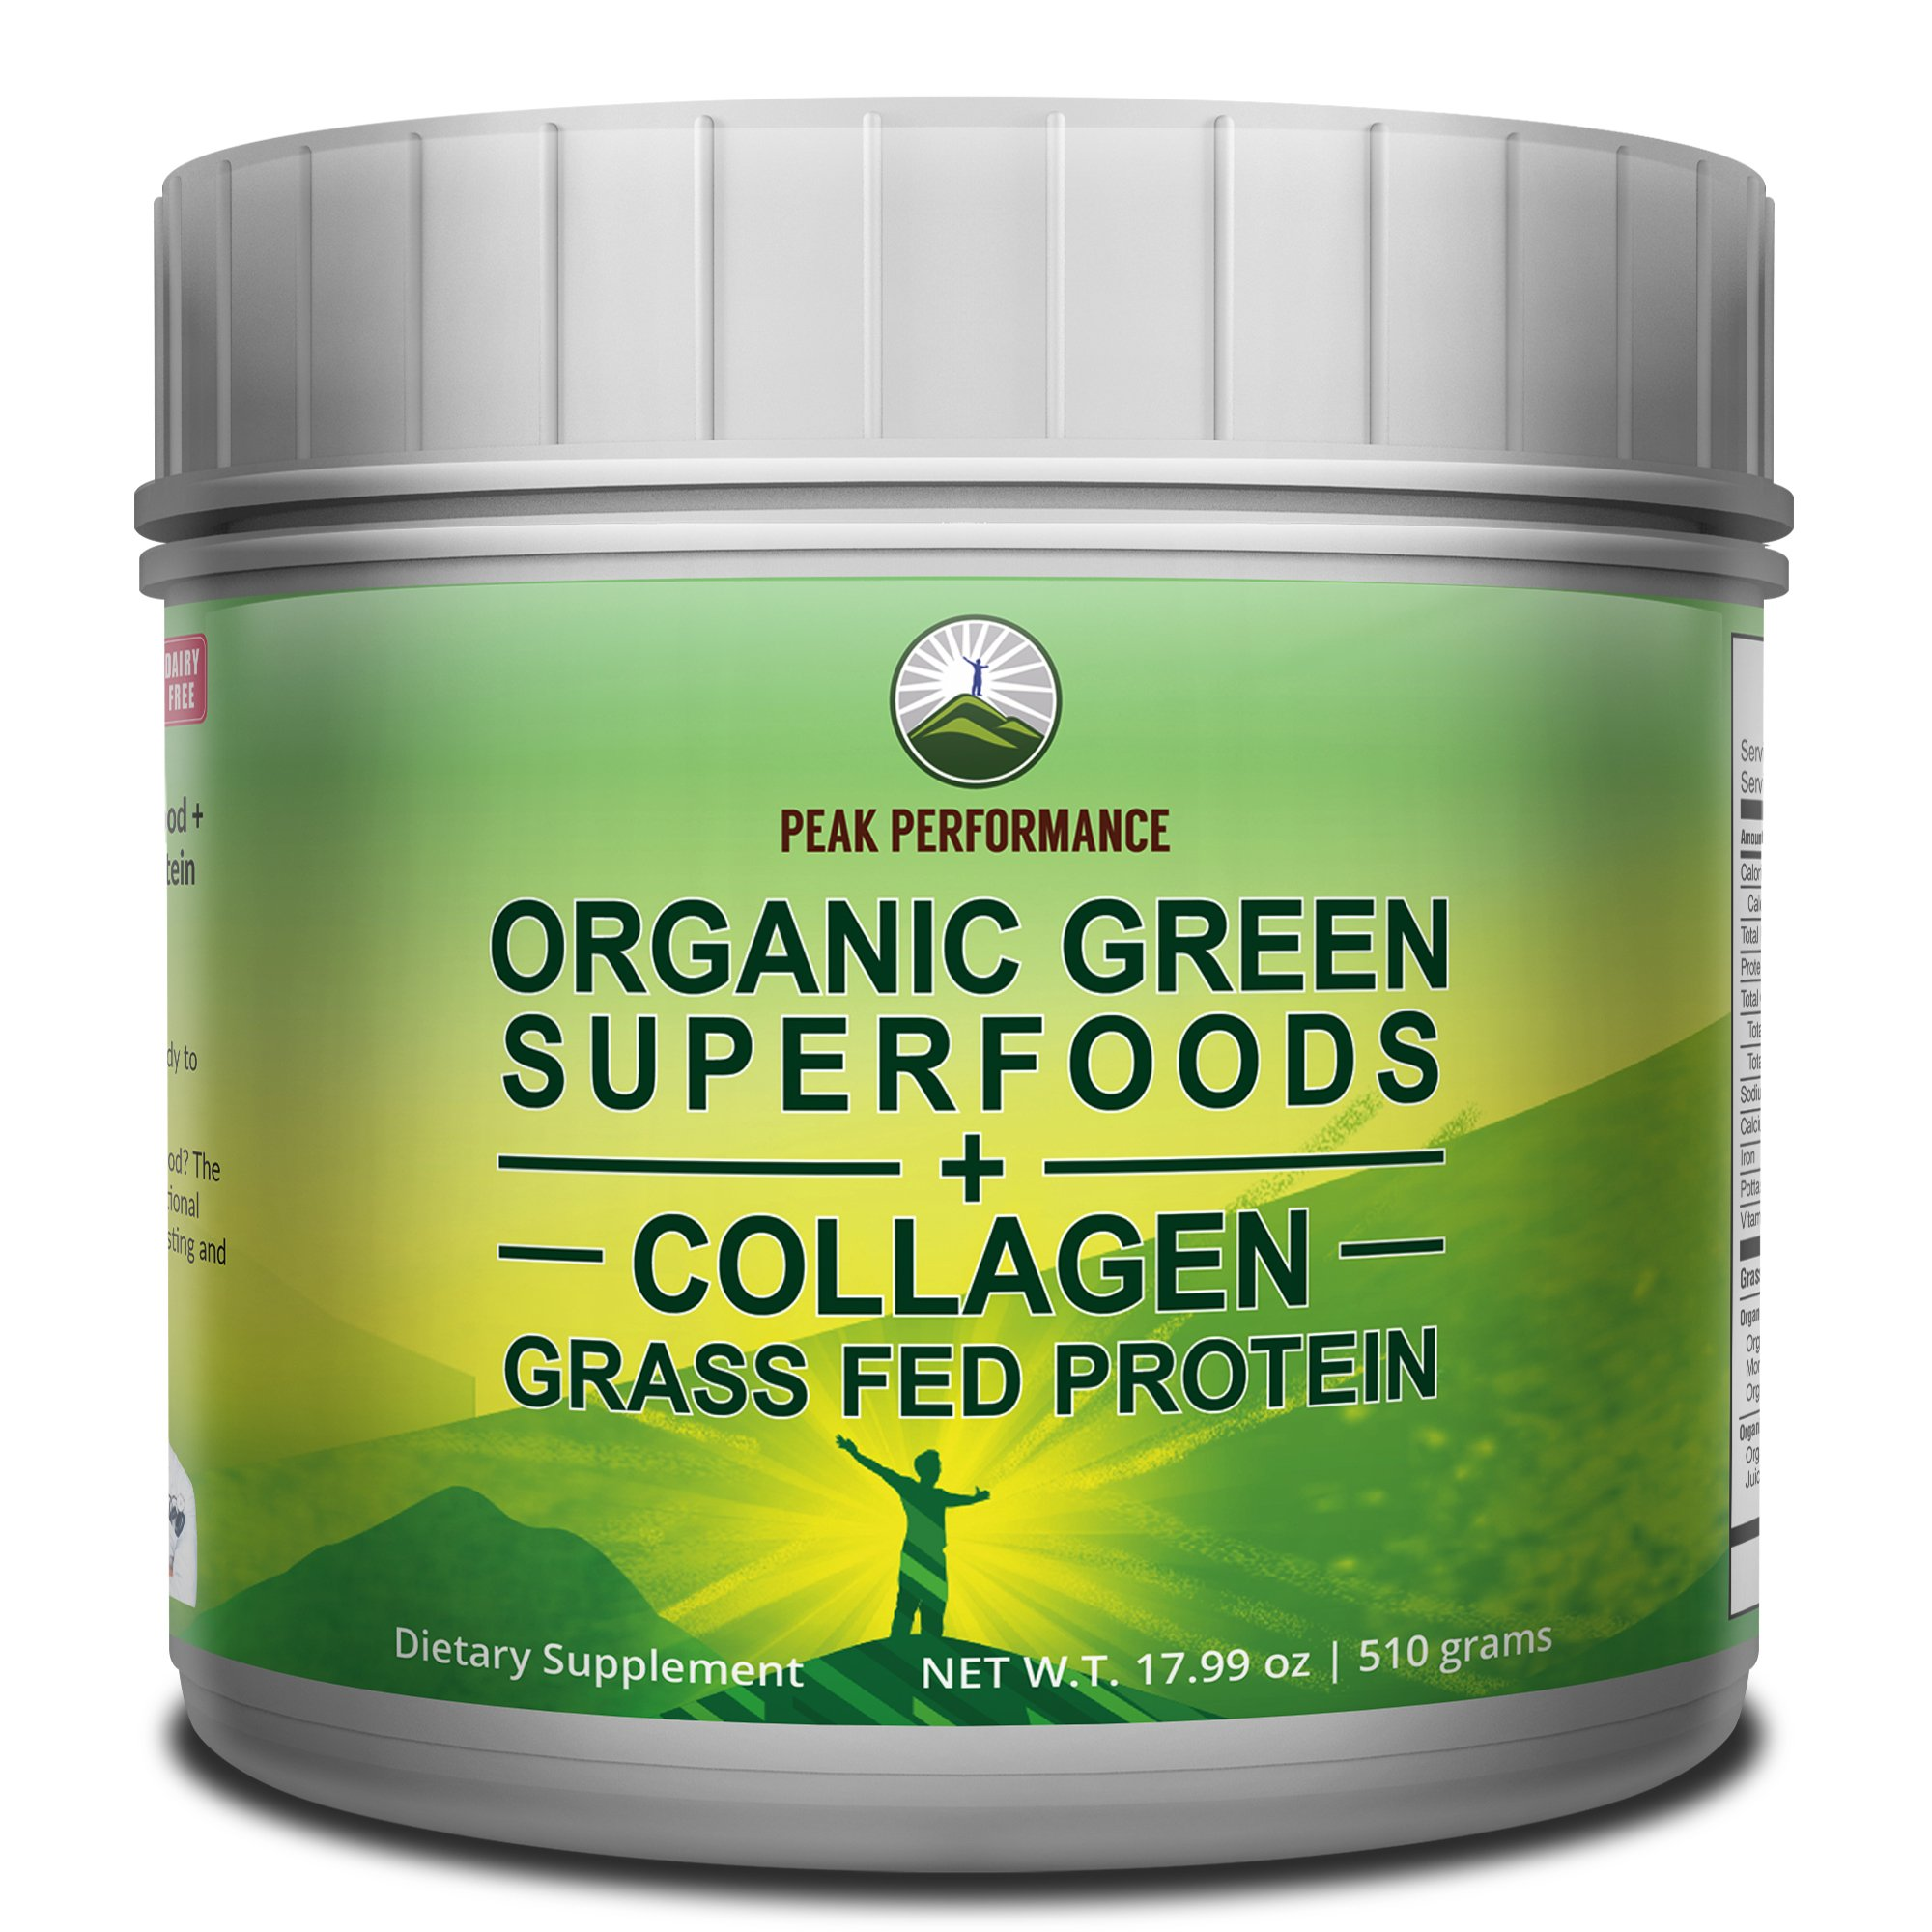 Peak Performance Organic Greens Superfood Grass Fed Collagen - Ultimate Blend of Best Tasting Organic Green Juice Superfood with Pure Pasture Raised Hydrolyzed Protein Powder. 42+ Greens and Aminos by Peak Performance Coffee